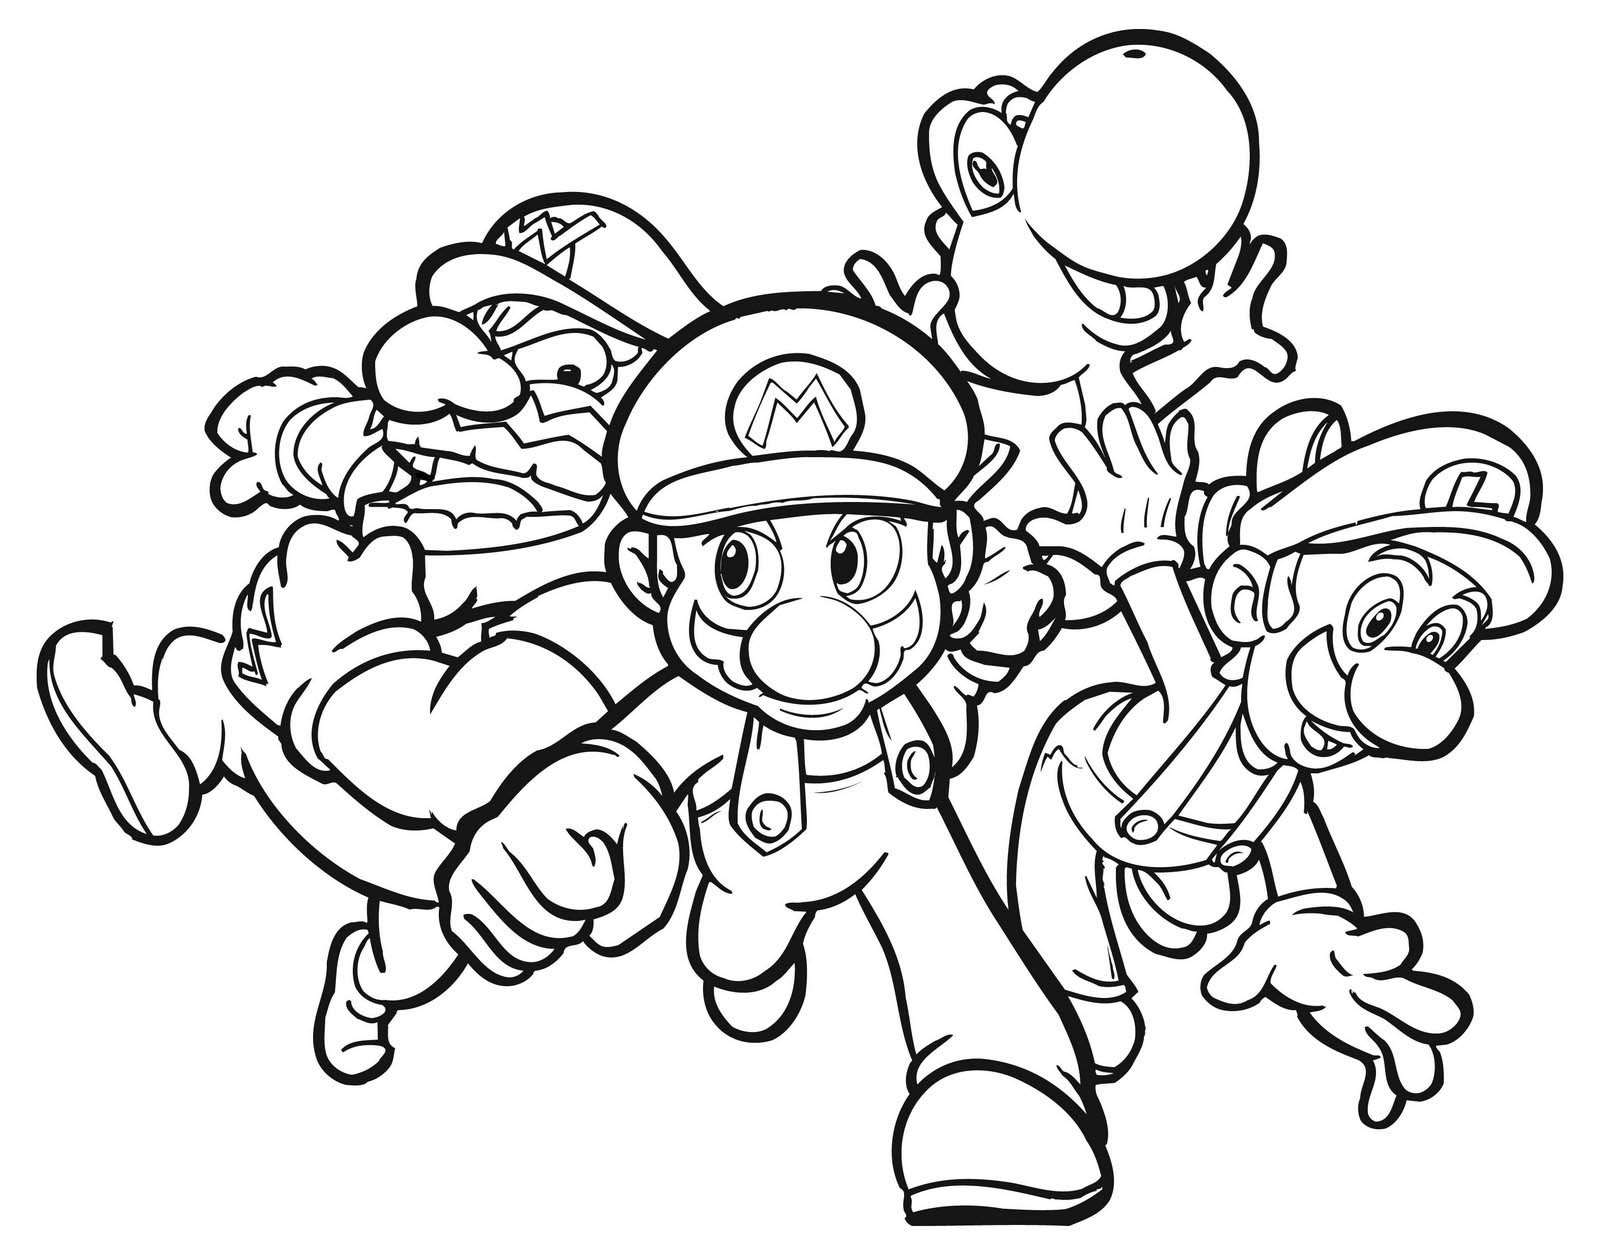 super mario coloring page new super mario coloring pages download and print for free super coloring page mario